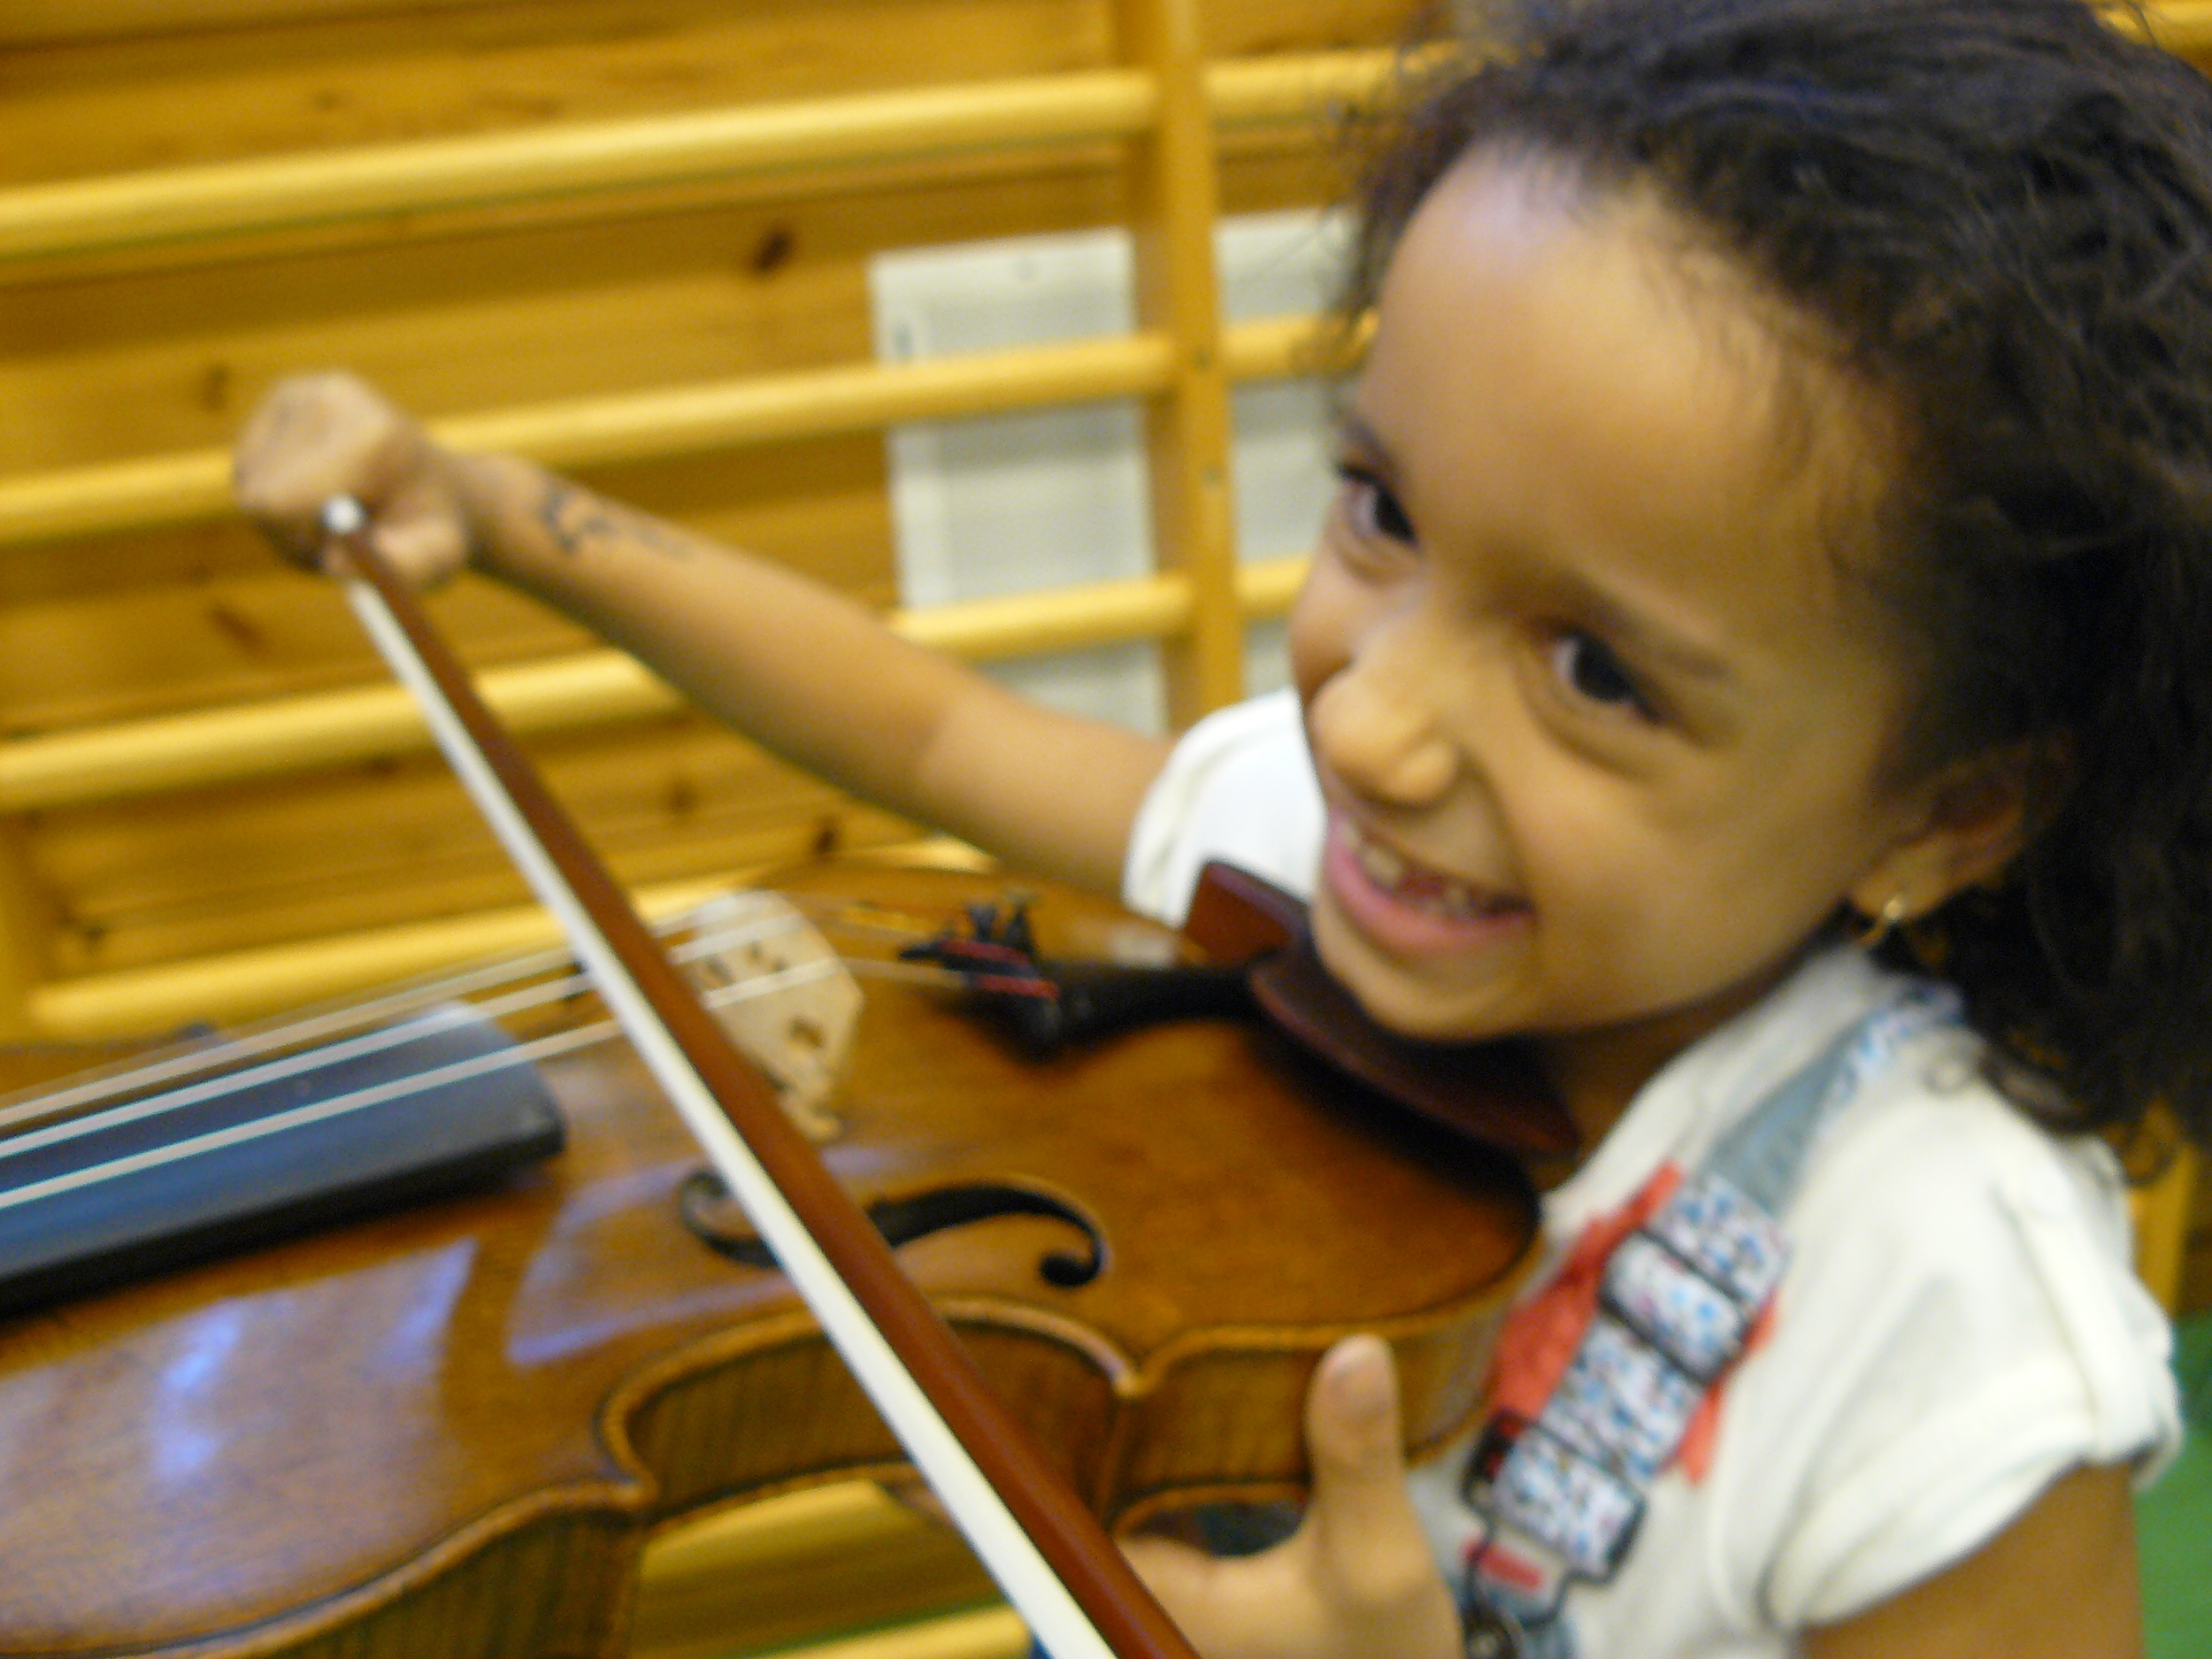 And maybe some new young violinists...